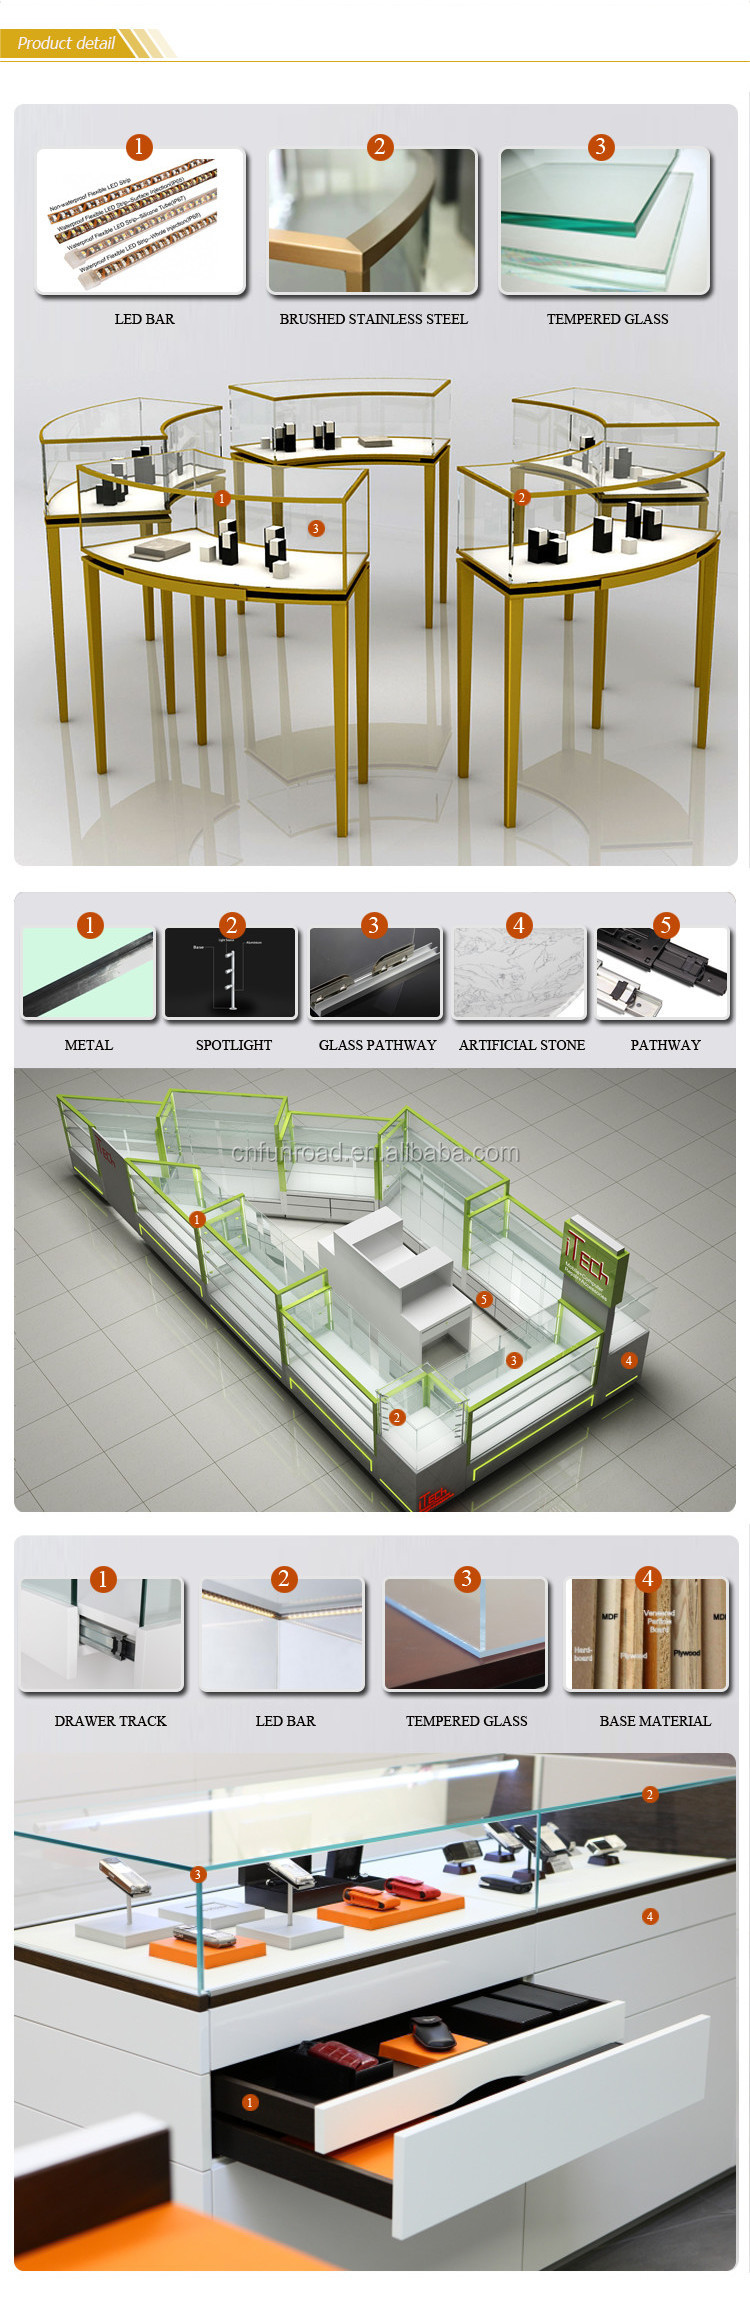 hot sale make up durable mdf cosmetic counter center kiosk cosmetic